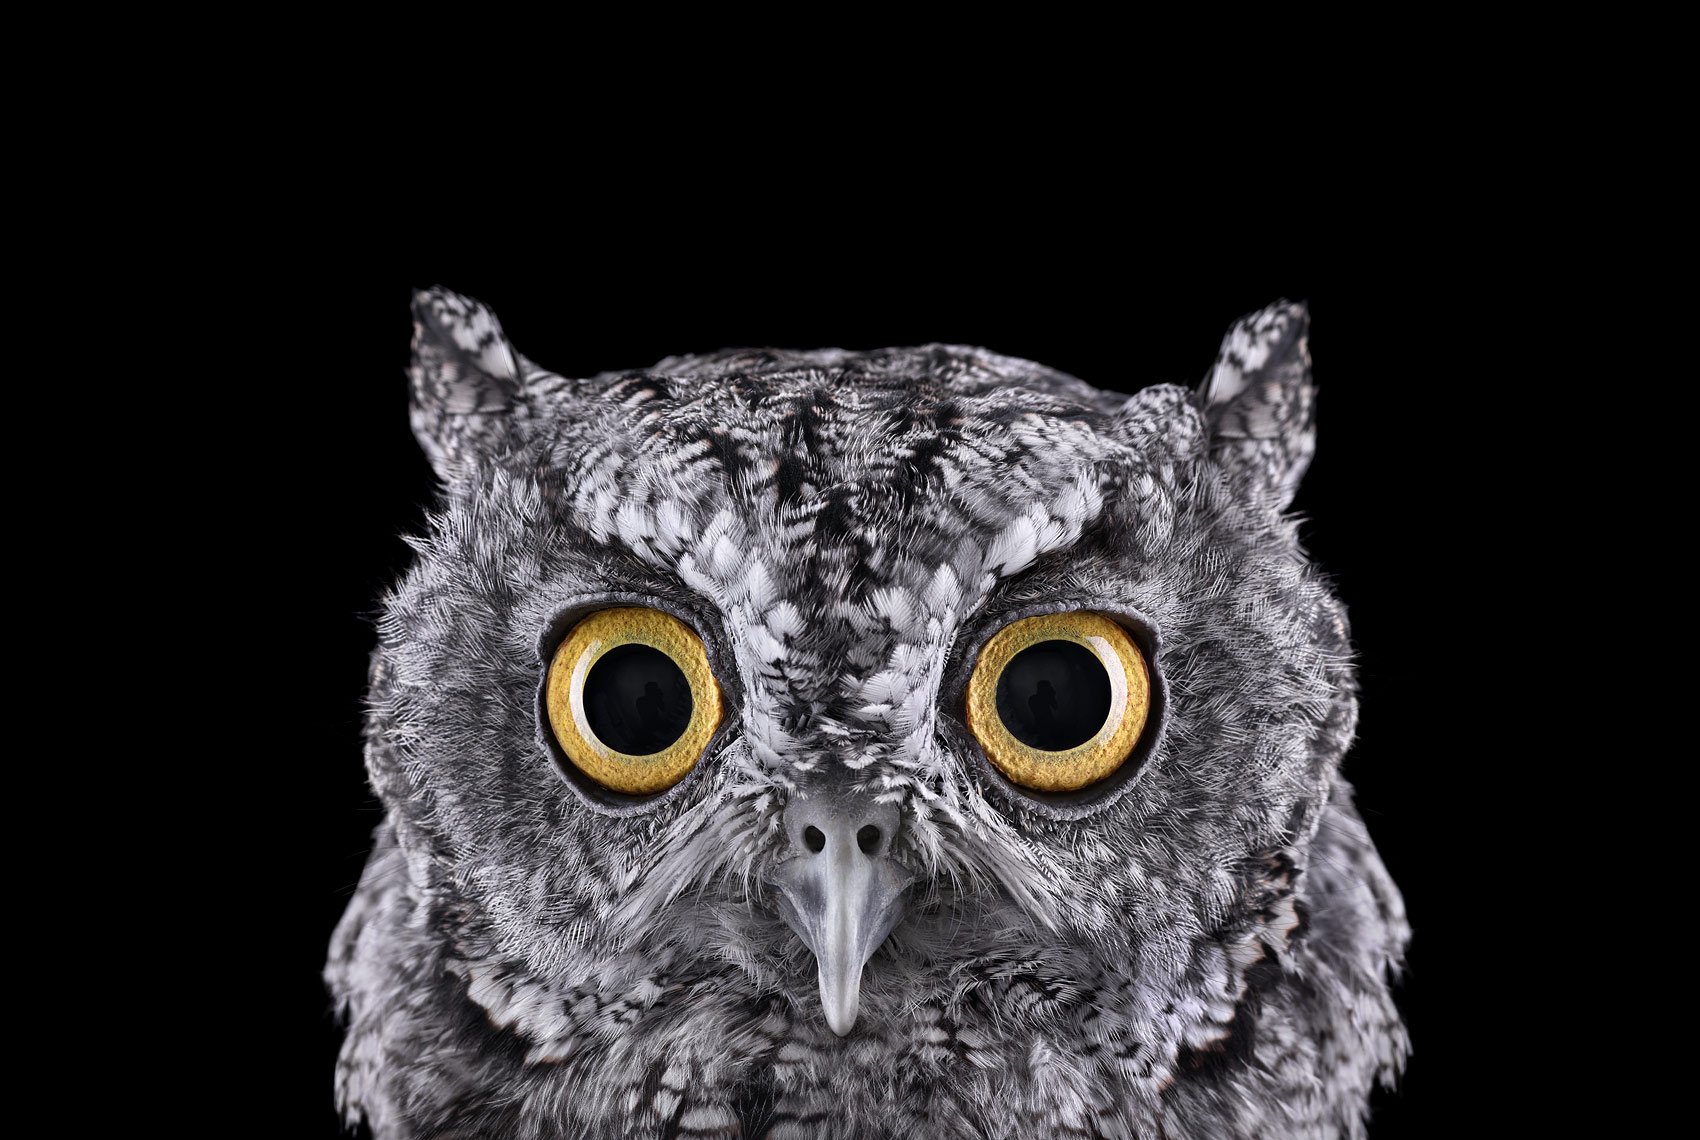 Western screech owl portrait by fine art animal photographer Brad Wilson